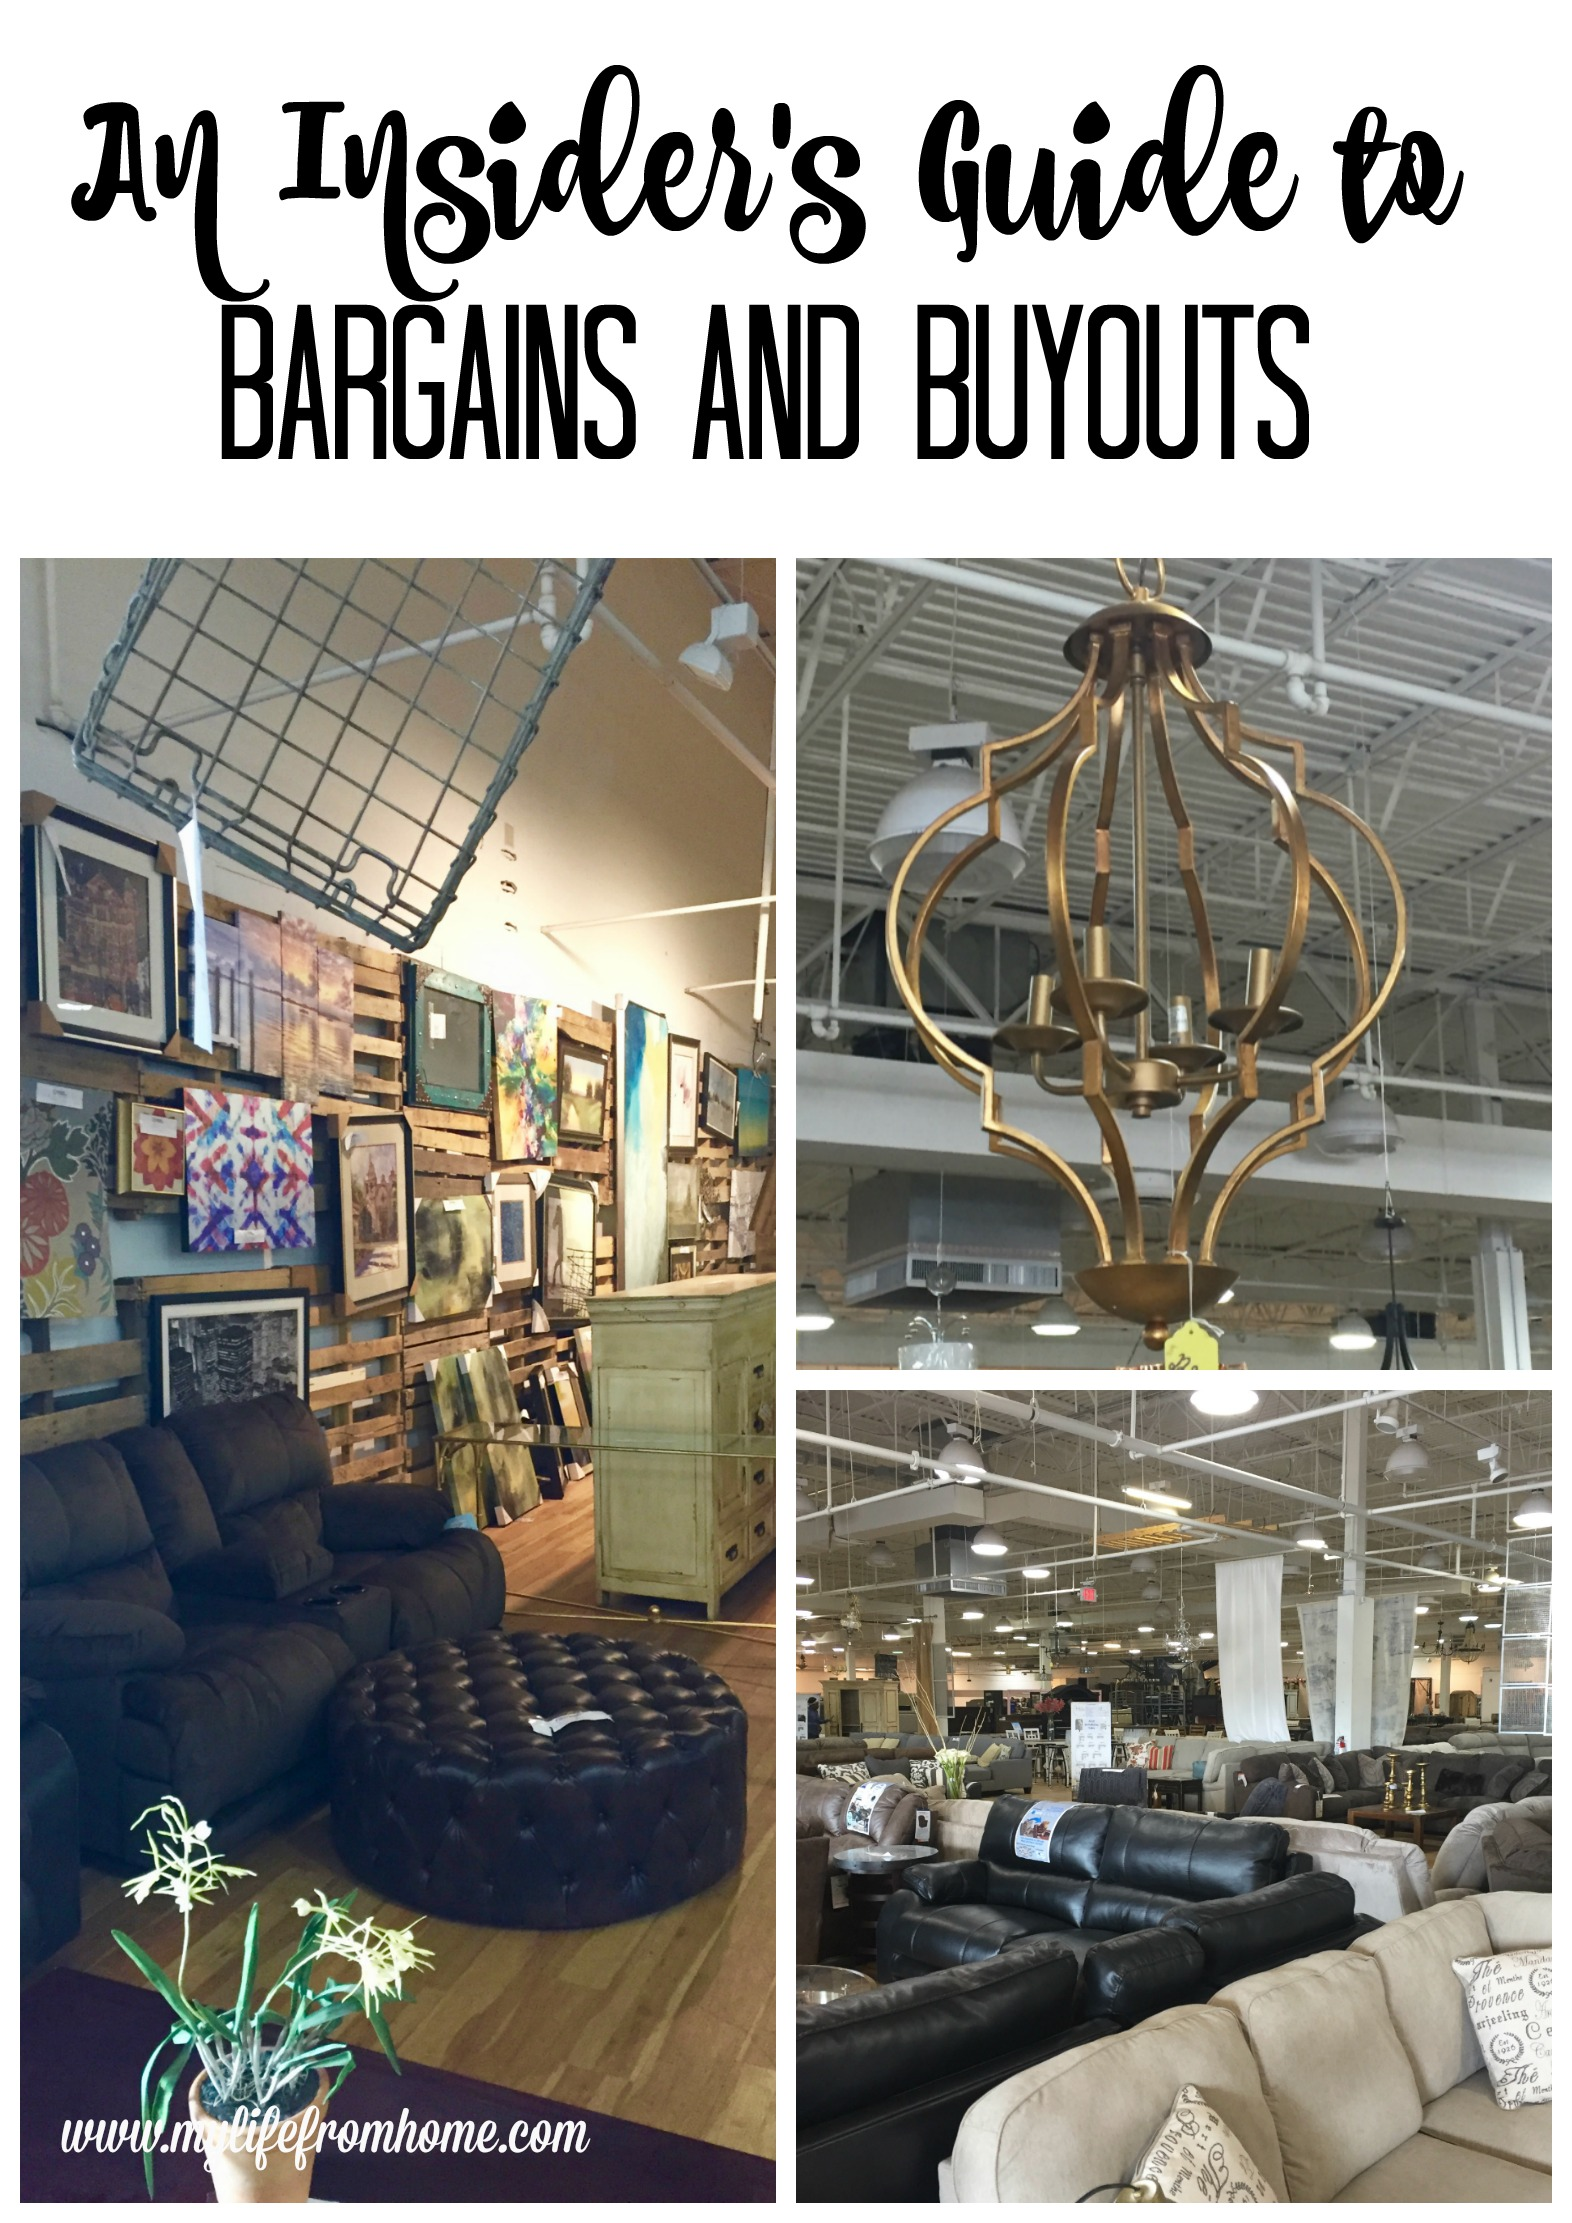 an-insiders-guide-to-bargains-and-buyouts-cincinnati-ohio-furniture-store-bargain-shopping-liquidated-furniture-home-decor-accessories-cincinnati-store